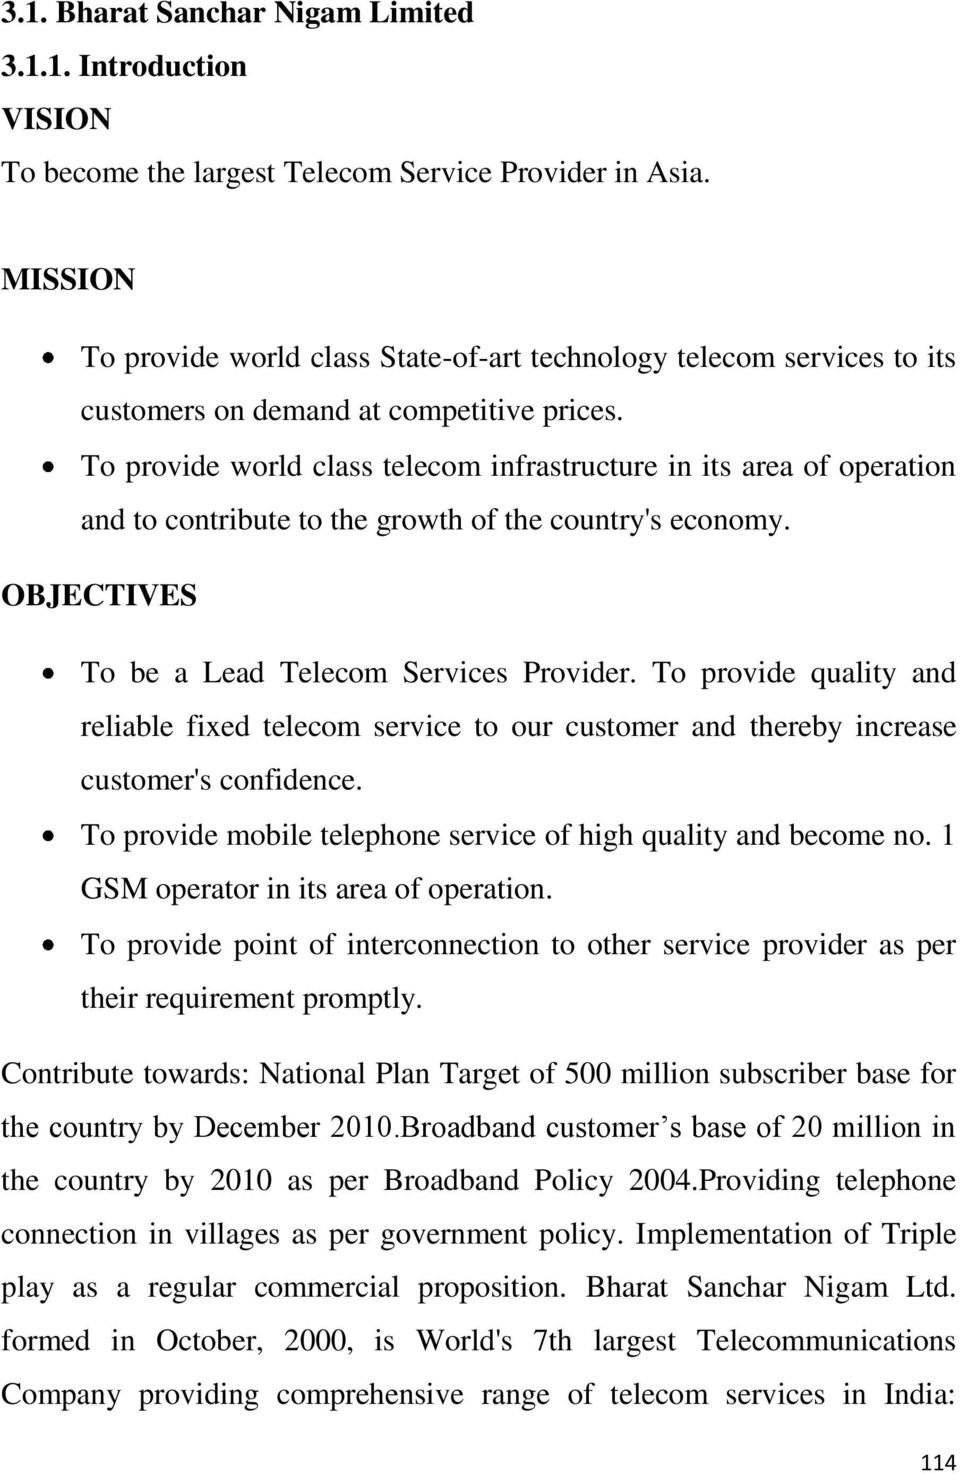 To provide world class telecom infrastructure in its area of operation and to contribute to the growth of the country's economy. OBJECTIVES To be a Lead Telecom Services Provider.